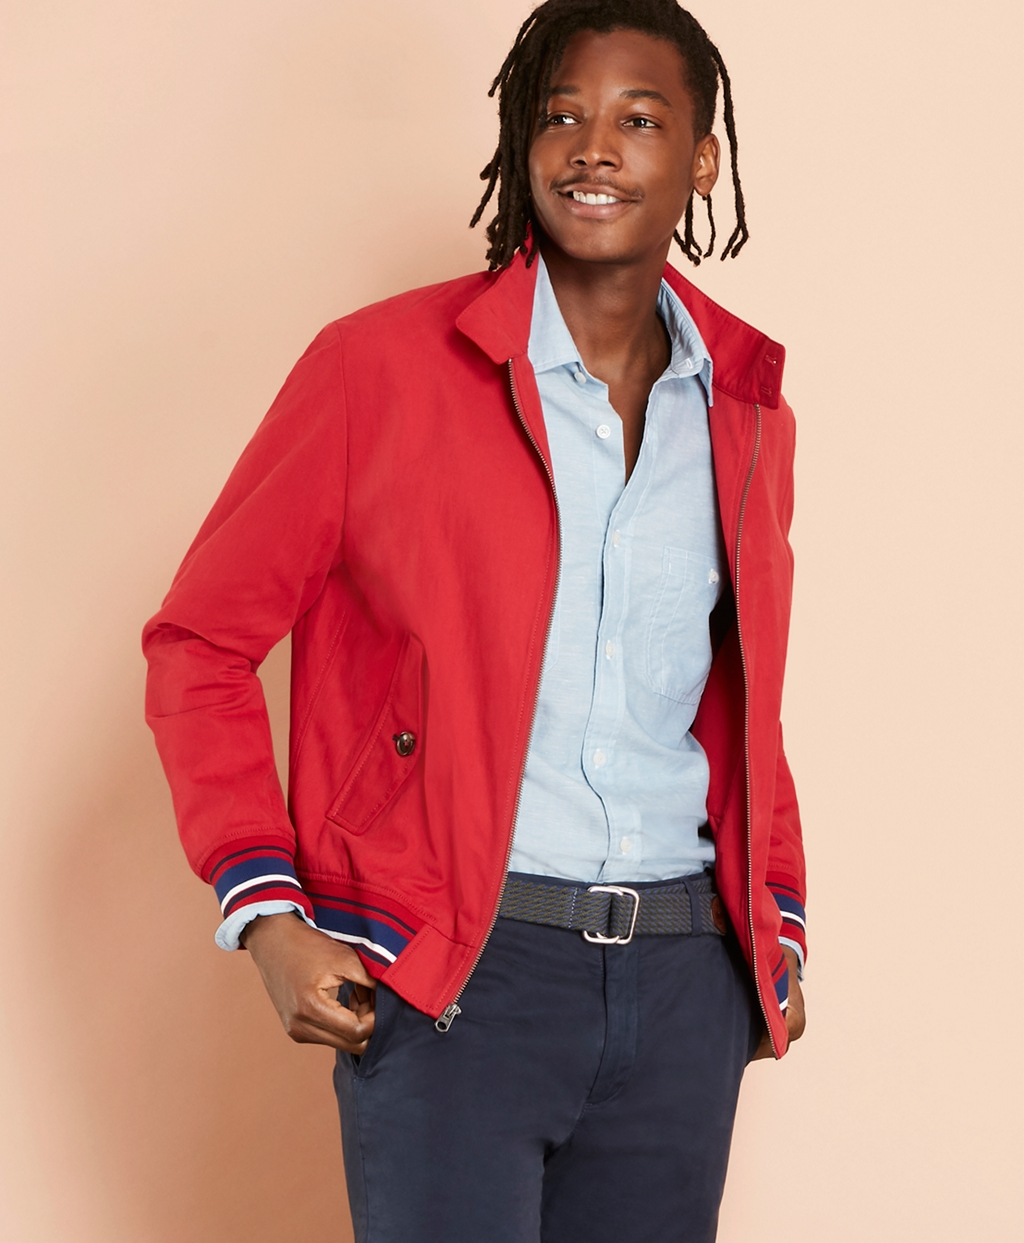 Men's Vintage Style Coats and Jackets Brooks Brothers Mens Water-Resistant Harrington Jacket $148.00 AT vintagedancer.com